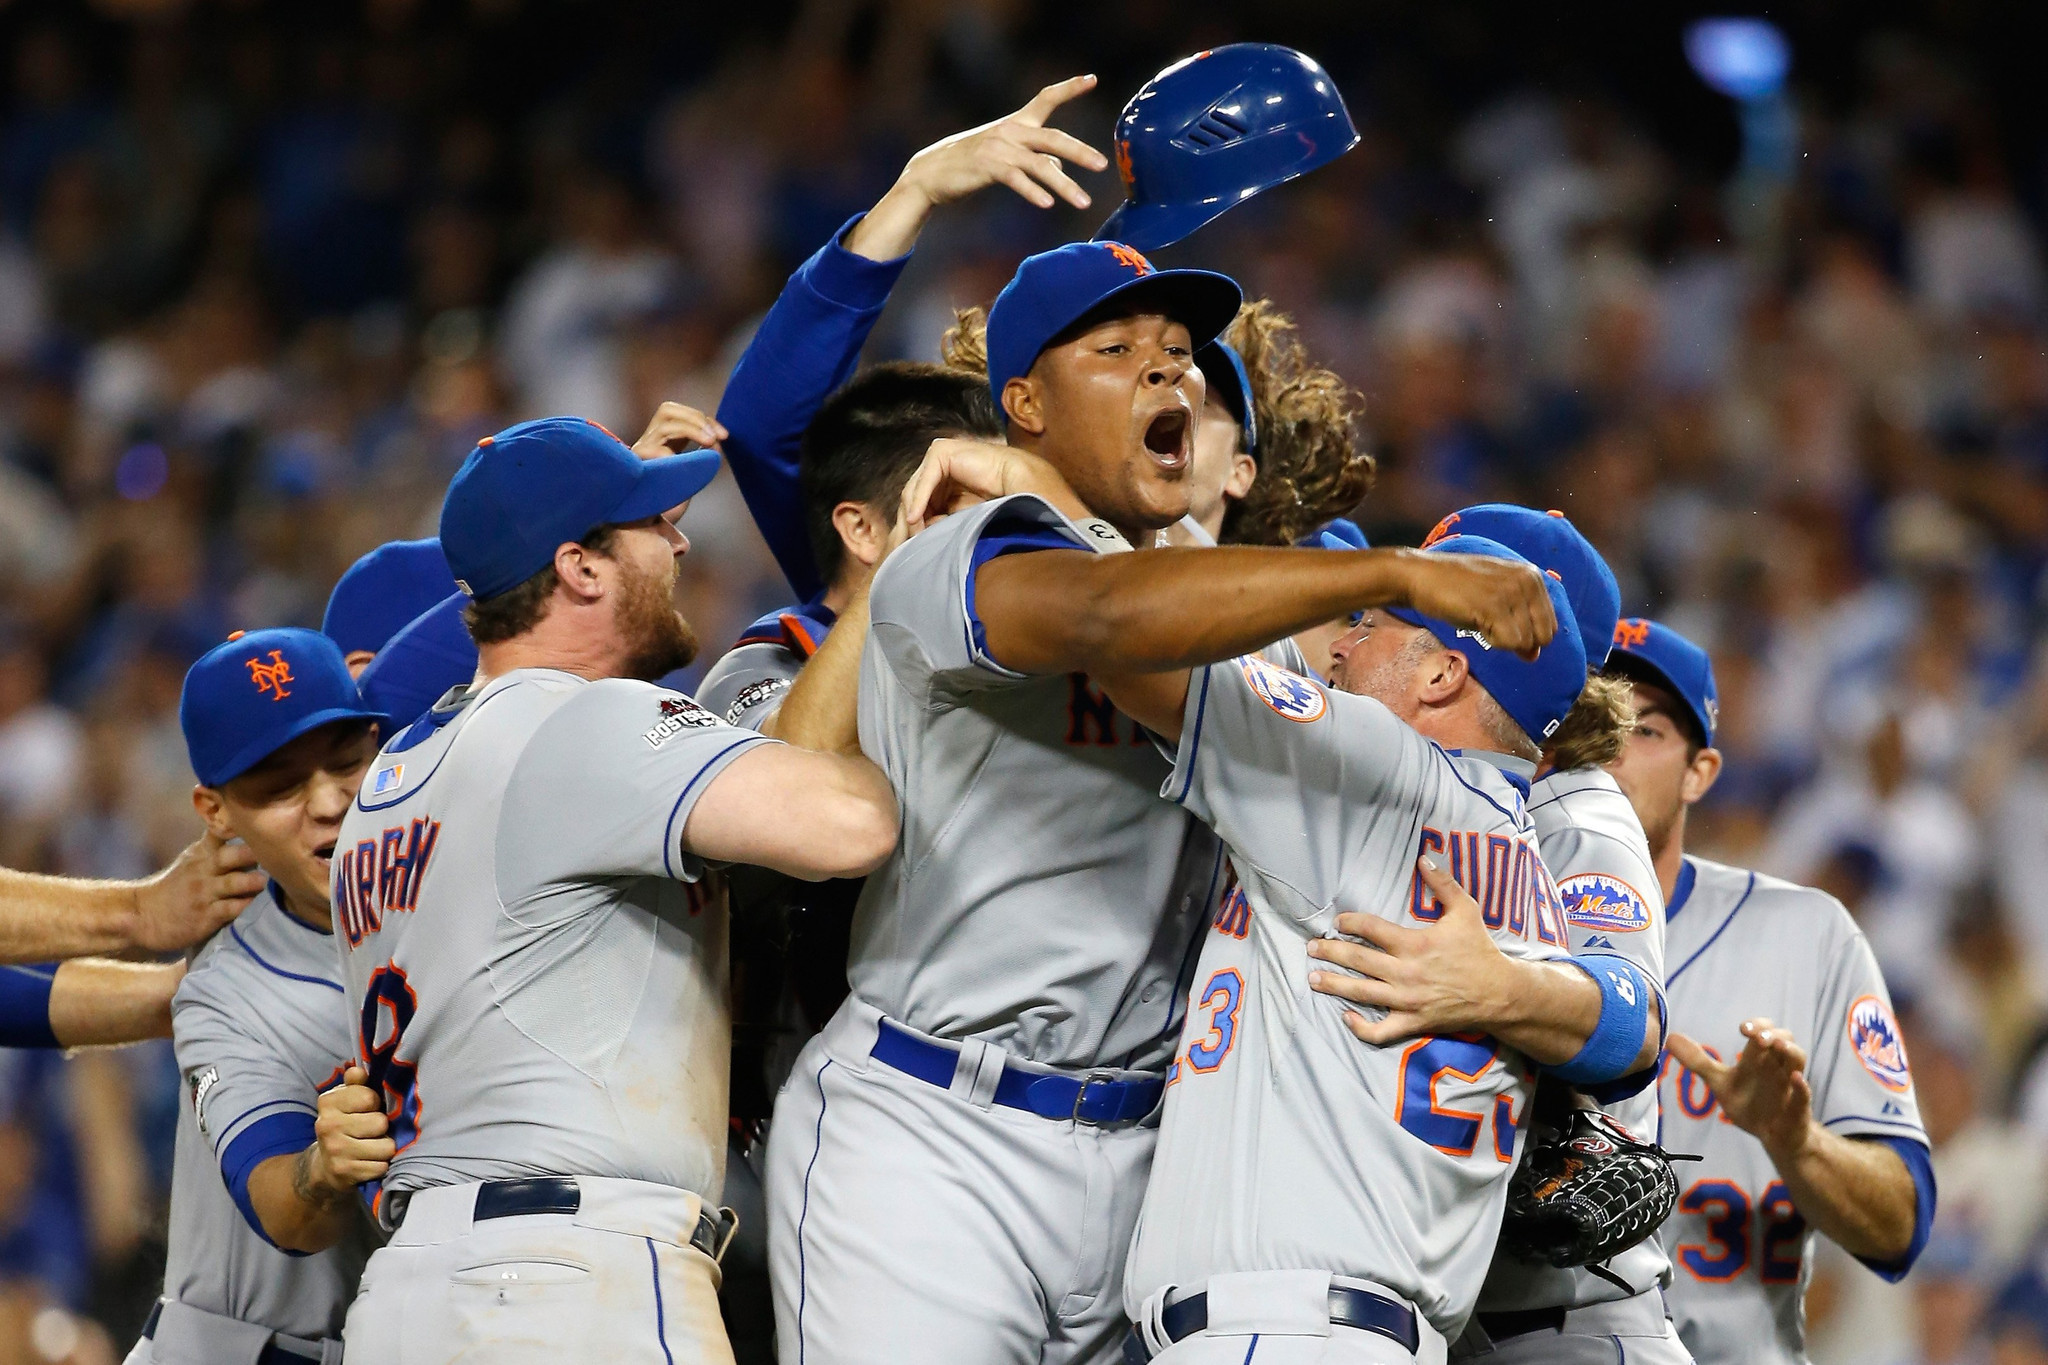 The Mets Defeat the Dodgers in Game 5, and the Twitter Trash Talk Was OD